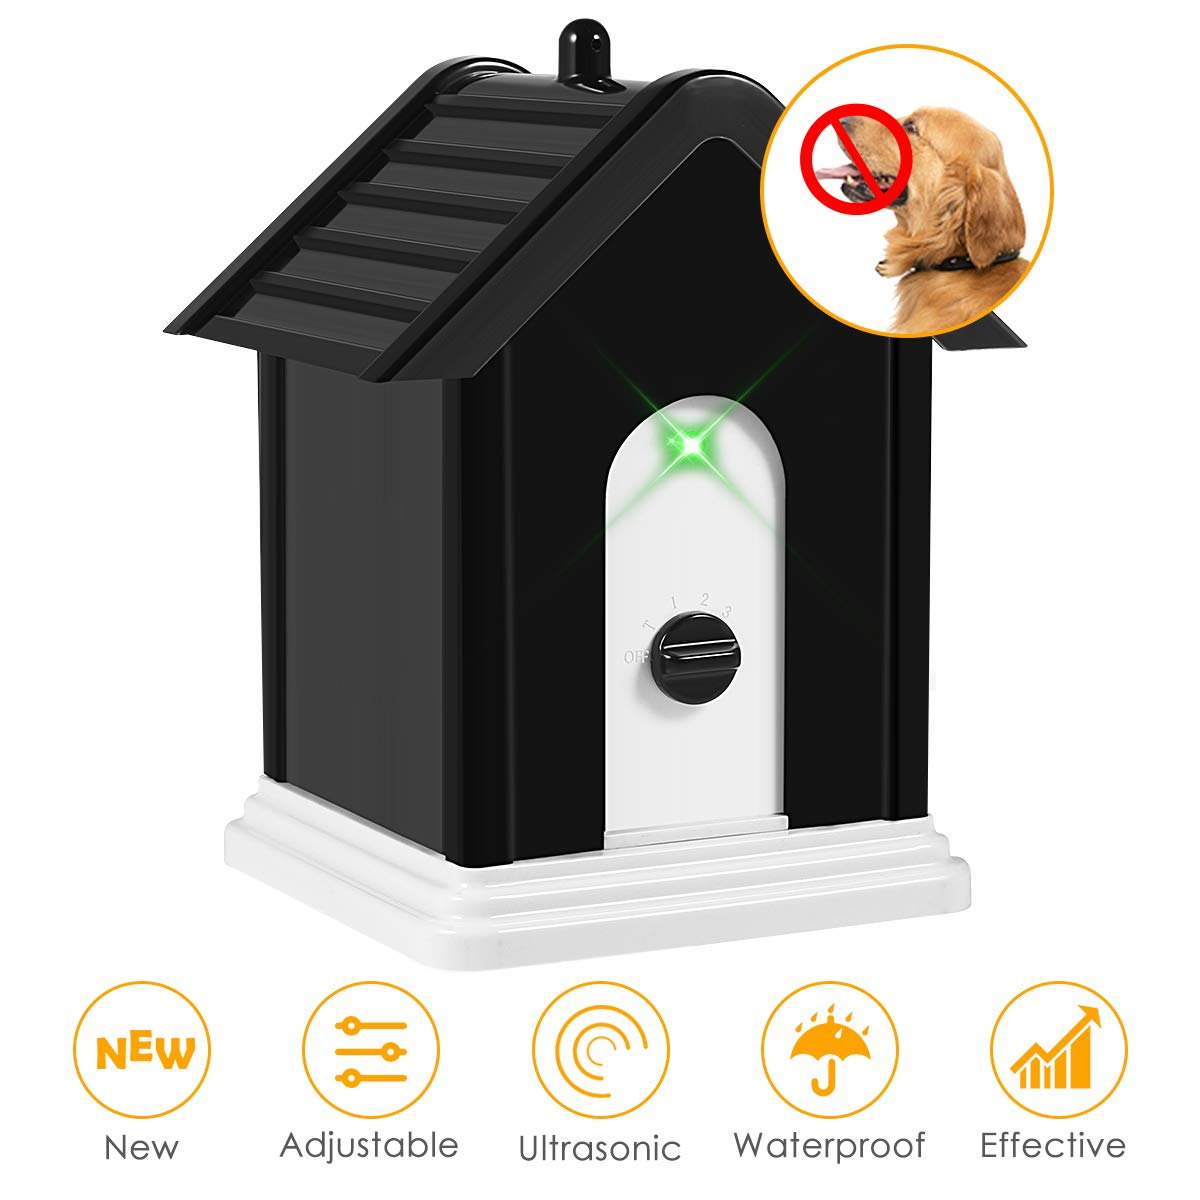 ELenest Anti Barking Device, 2019 New Bark Box Outdoor Dog Repellent Device with Adjustable Ultrasonic Level Control Safe for Small Medium Large Dogs, Sonic Bark Deterrents, Bark Control Device